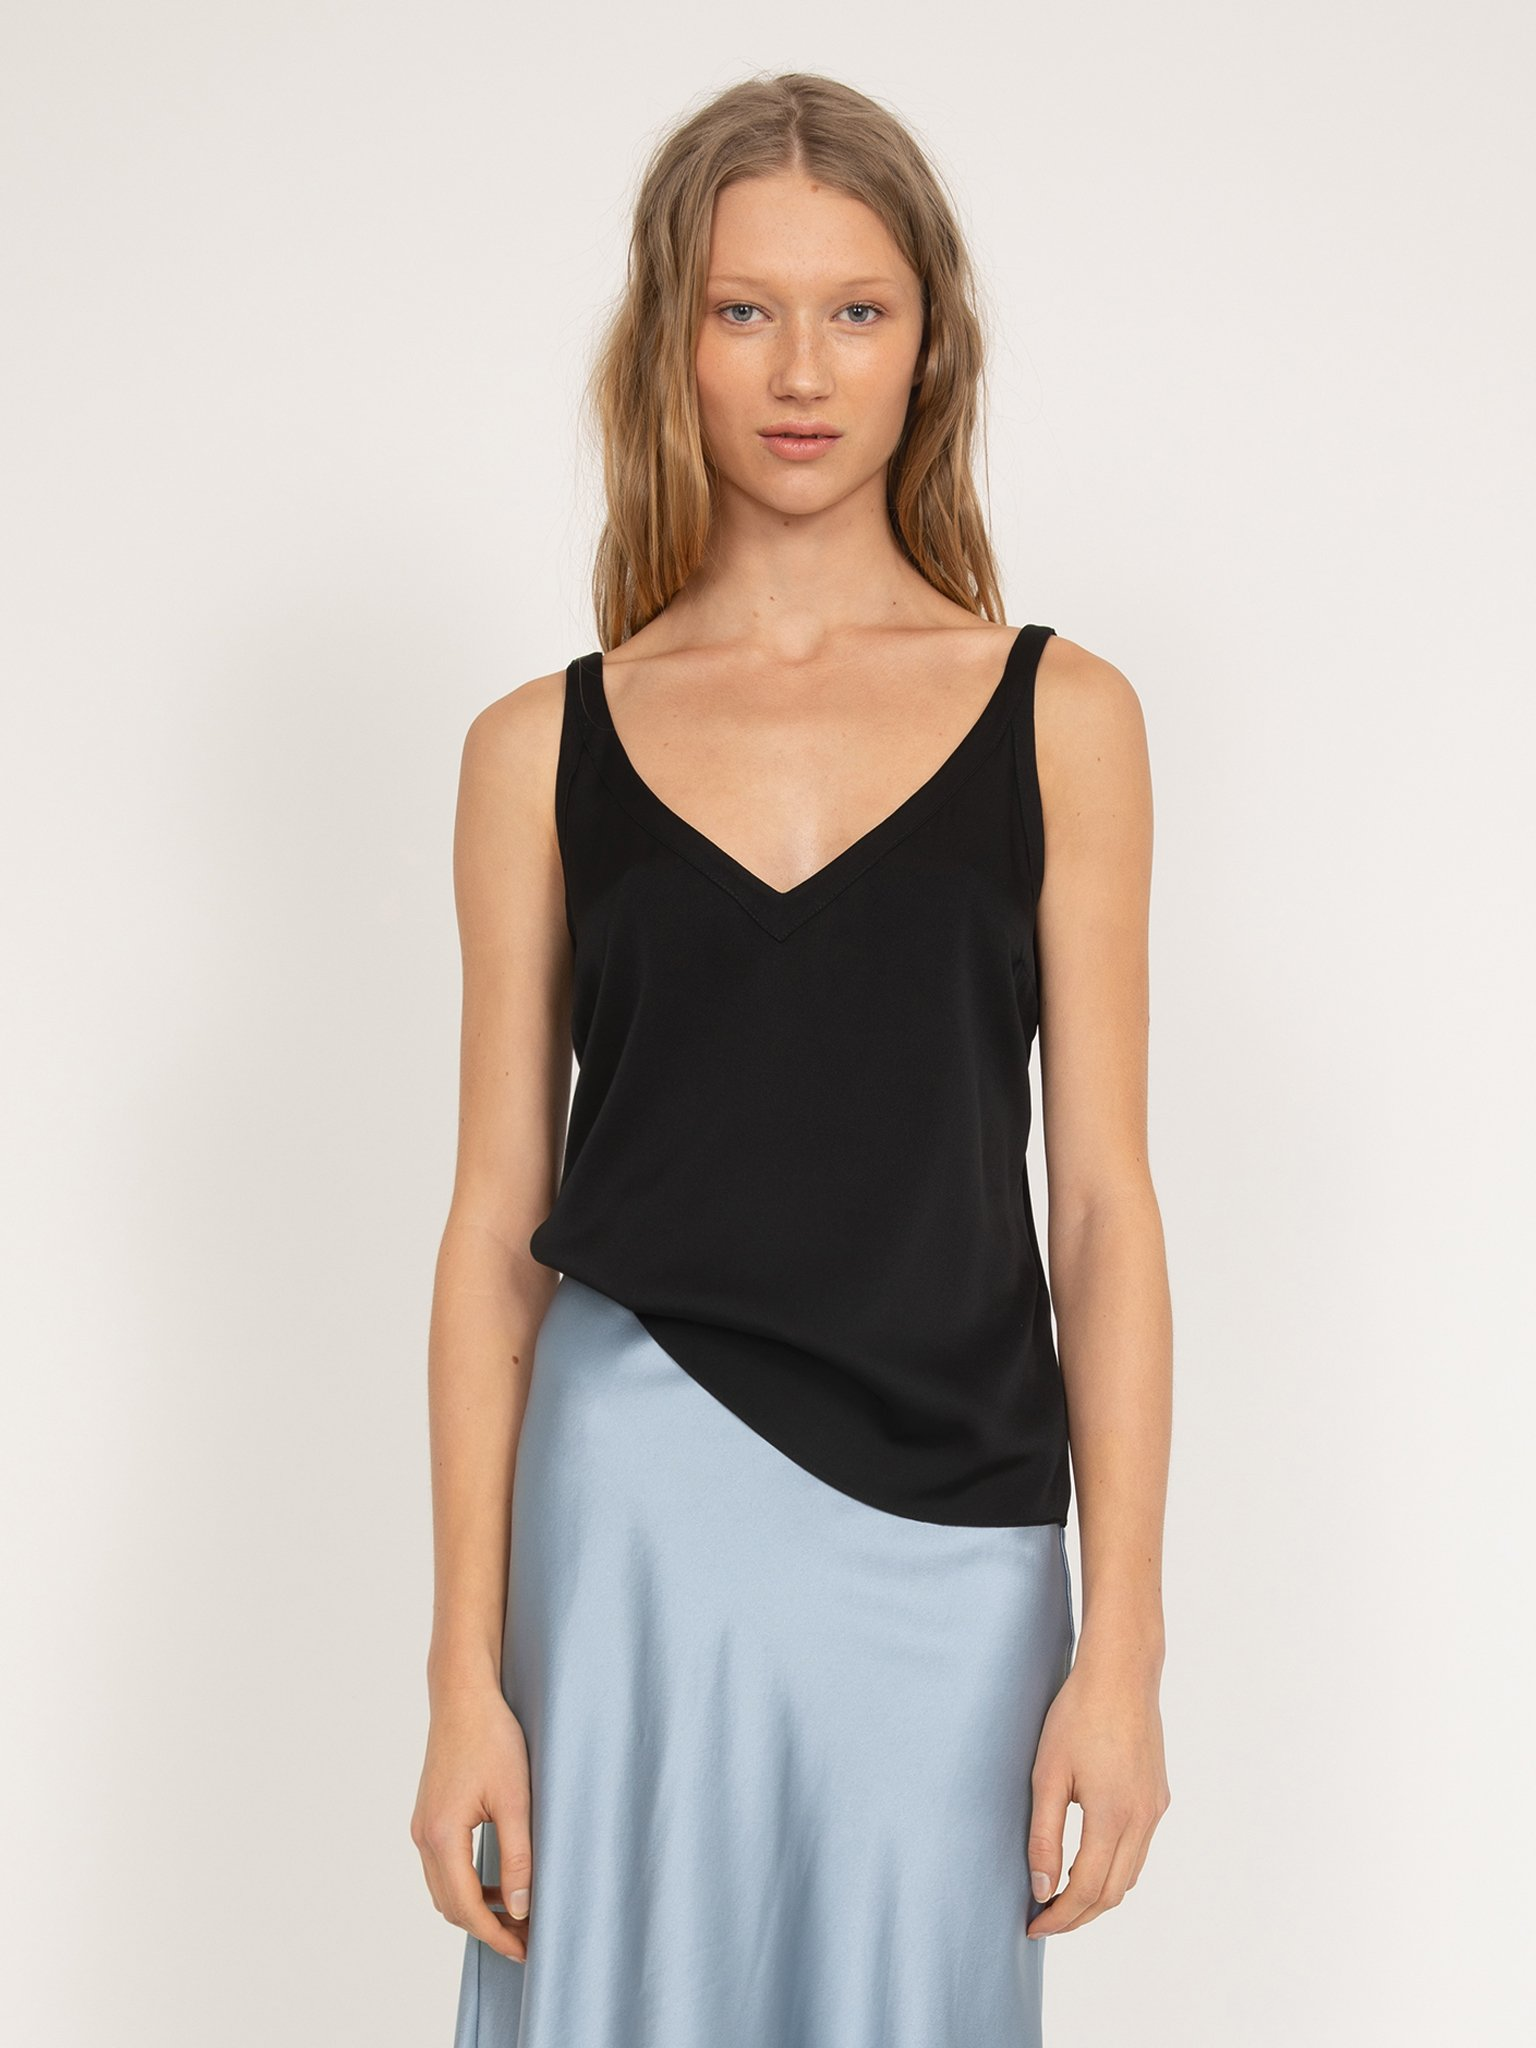 Linne, Ahlvar Gallery, Shin Tank Top, Black